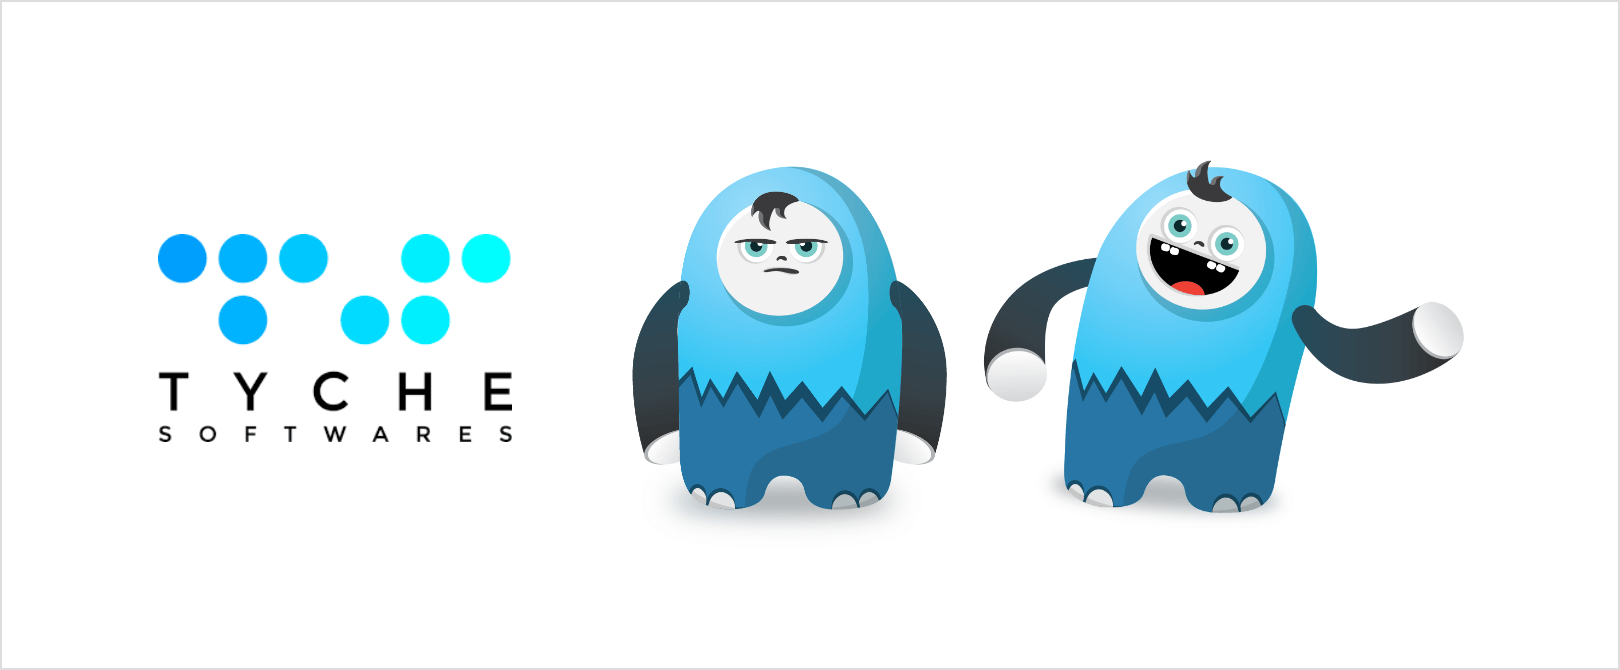 Tyche Softwares - Mascot